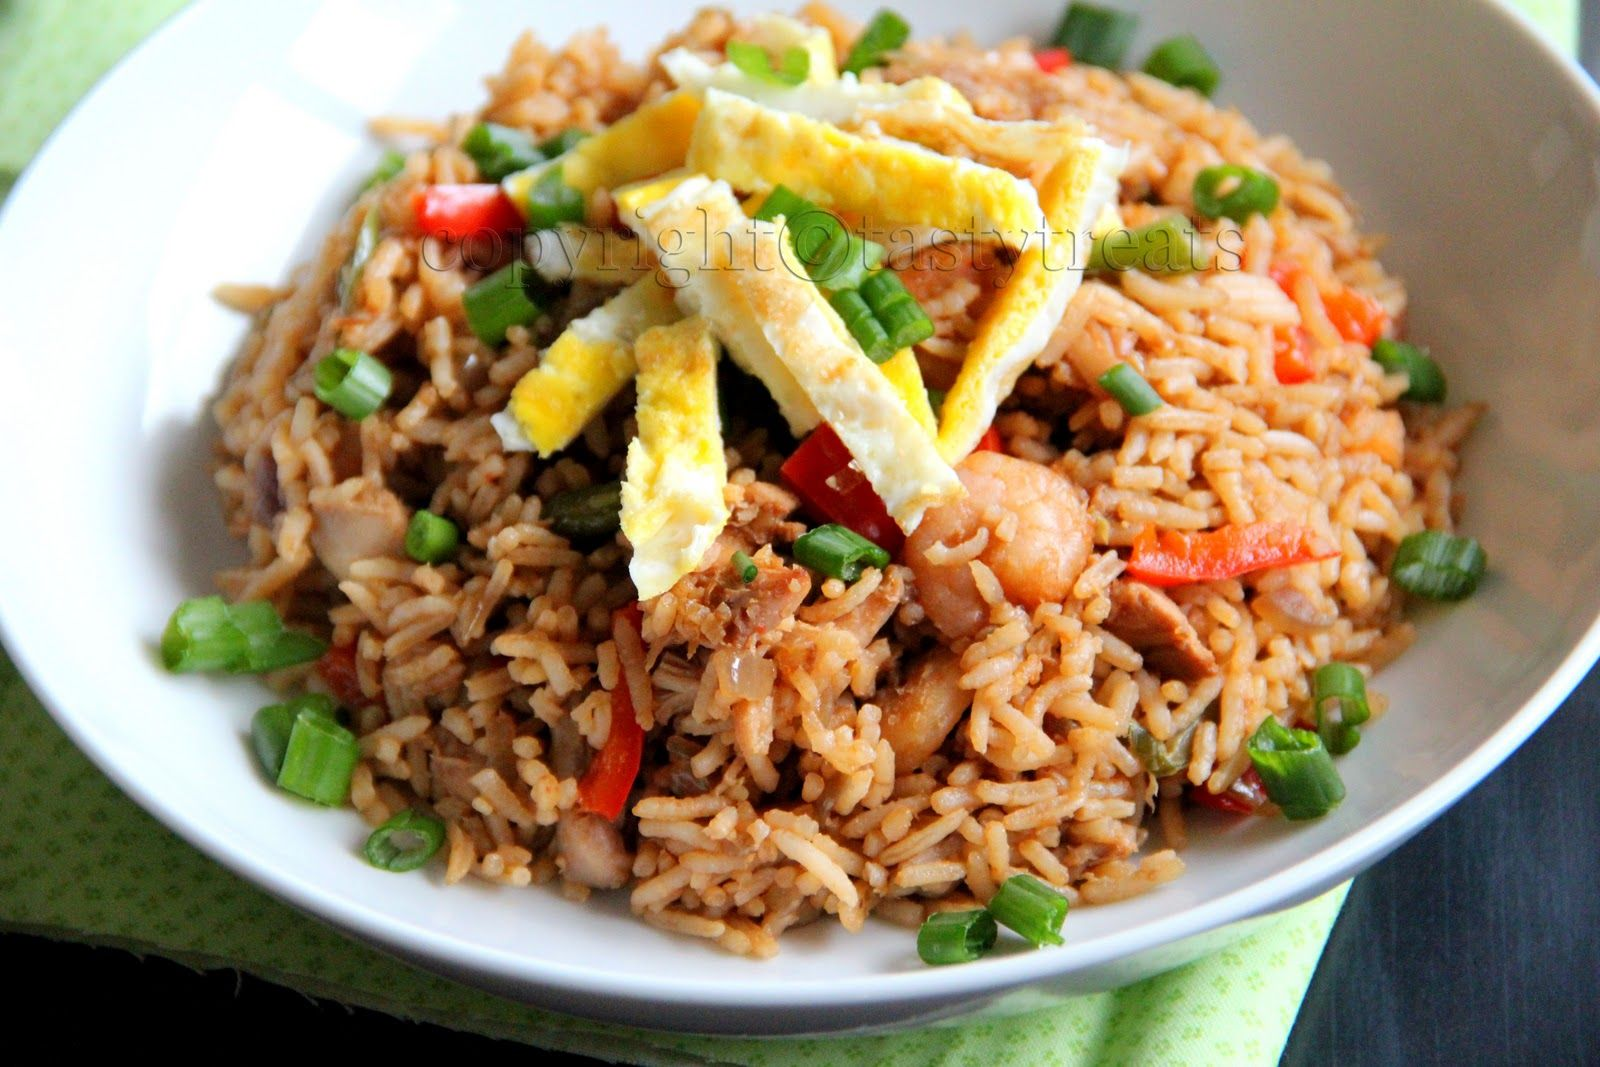 Asian rice dish goreng pics 983